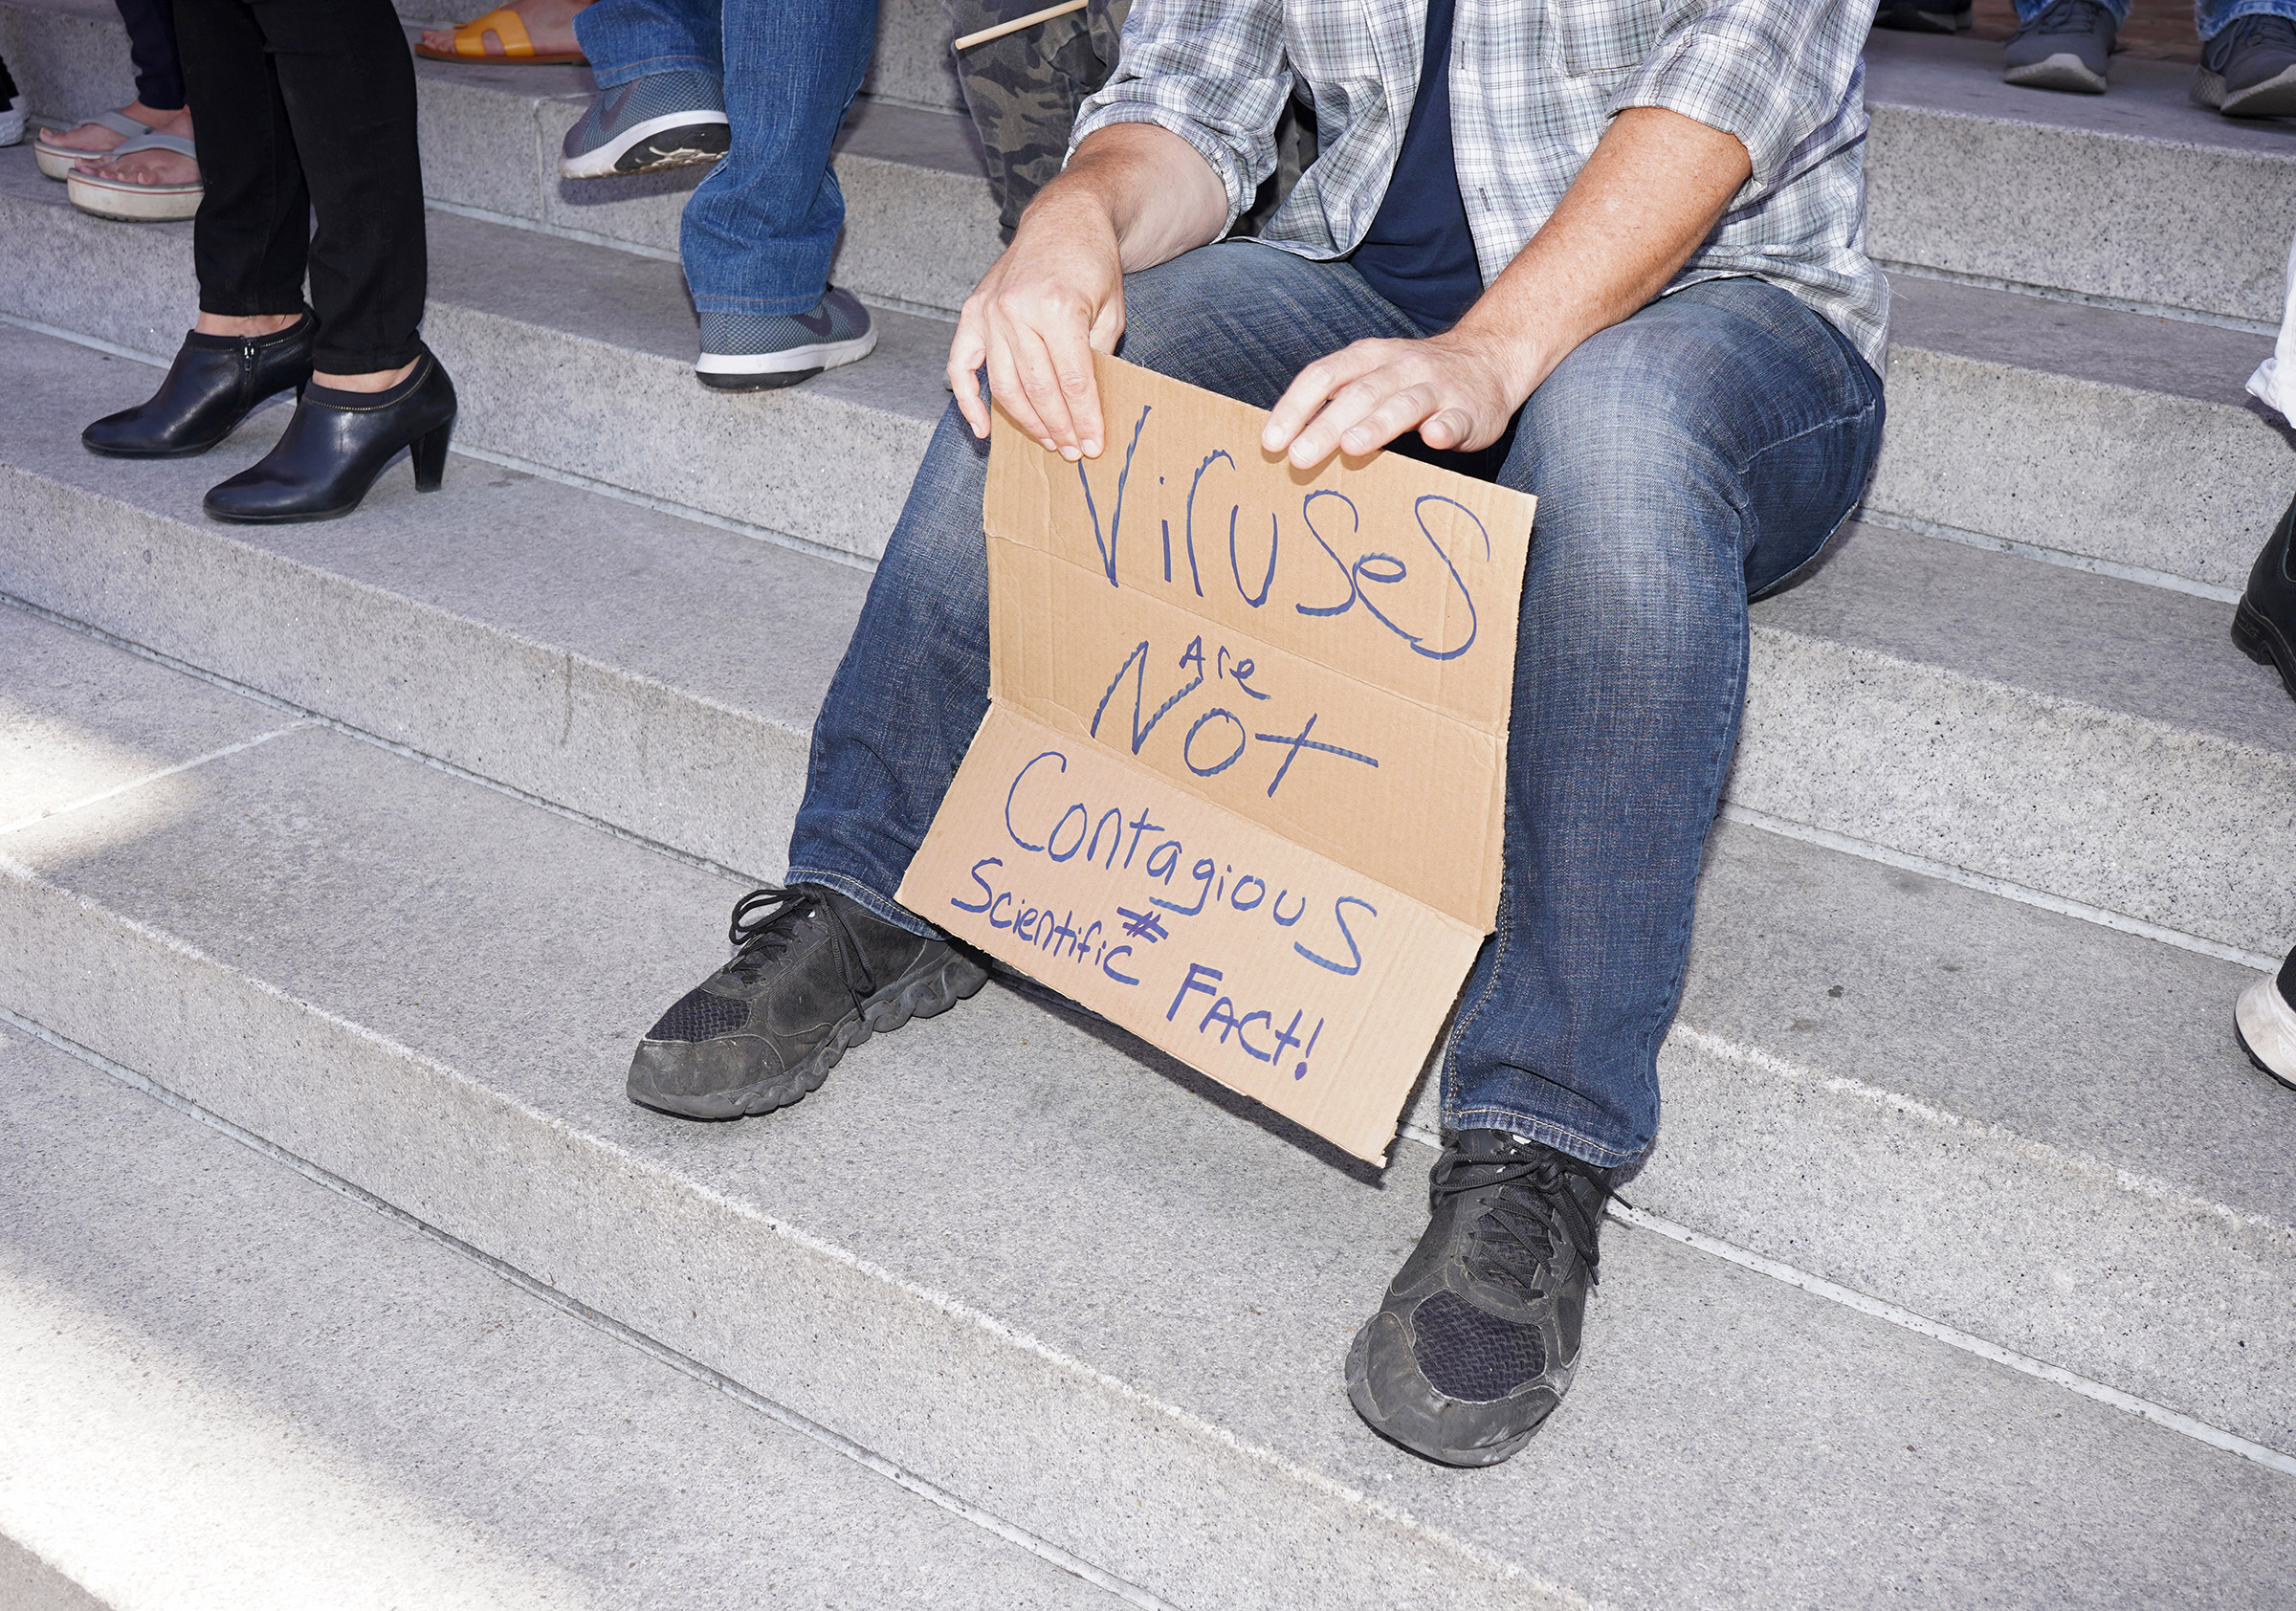 A protestor's sign at a rally calling for the reopening of California from coronavirus lockdown measures in Los Angeles, May 24, 2020.